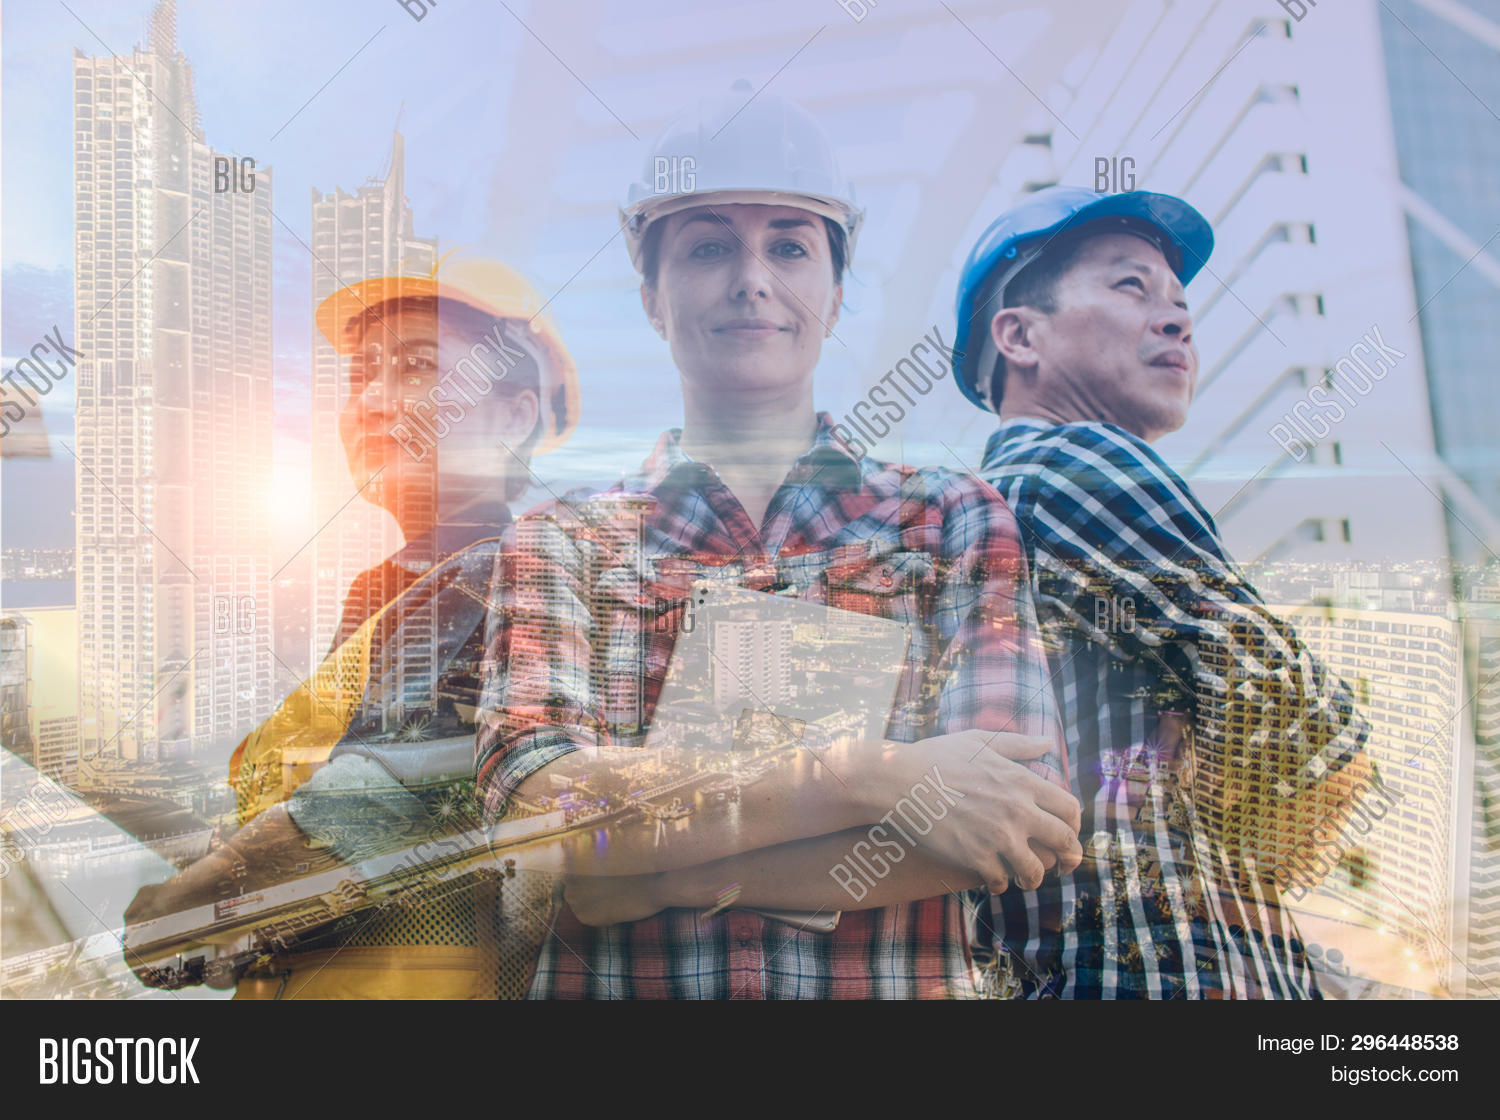 Double Exposure Engineering And Construction Concept. Industrial Engineer Wear Safety Helmet Enginee